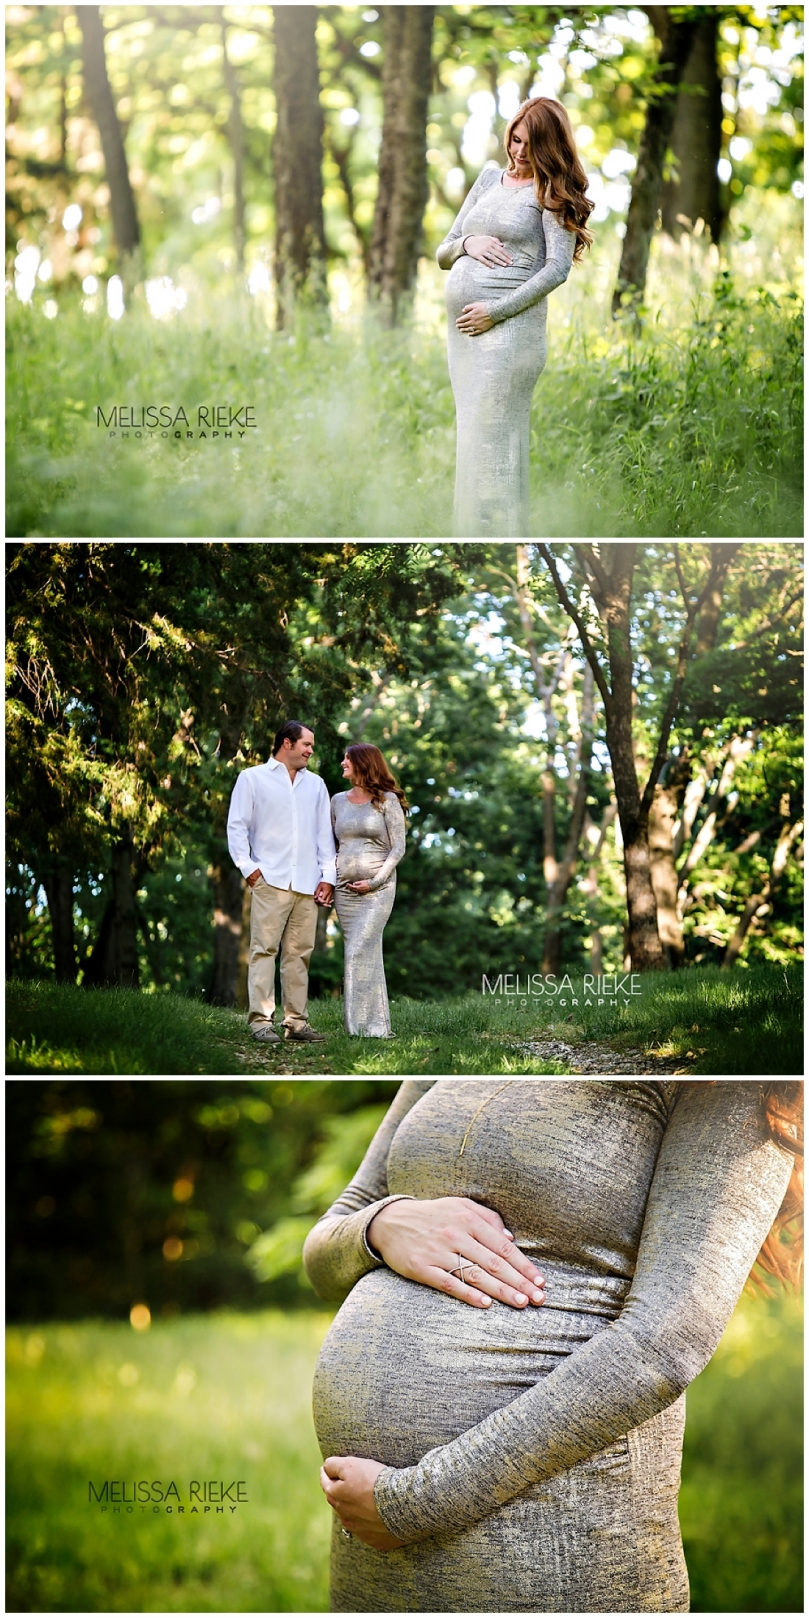 Maternity Photography Kansas City Floral Gown Baby Bump Pictures Forest Greenspace Dreamy Session